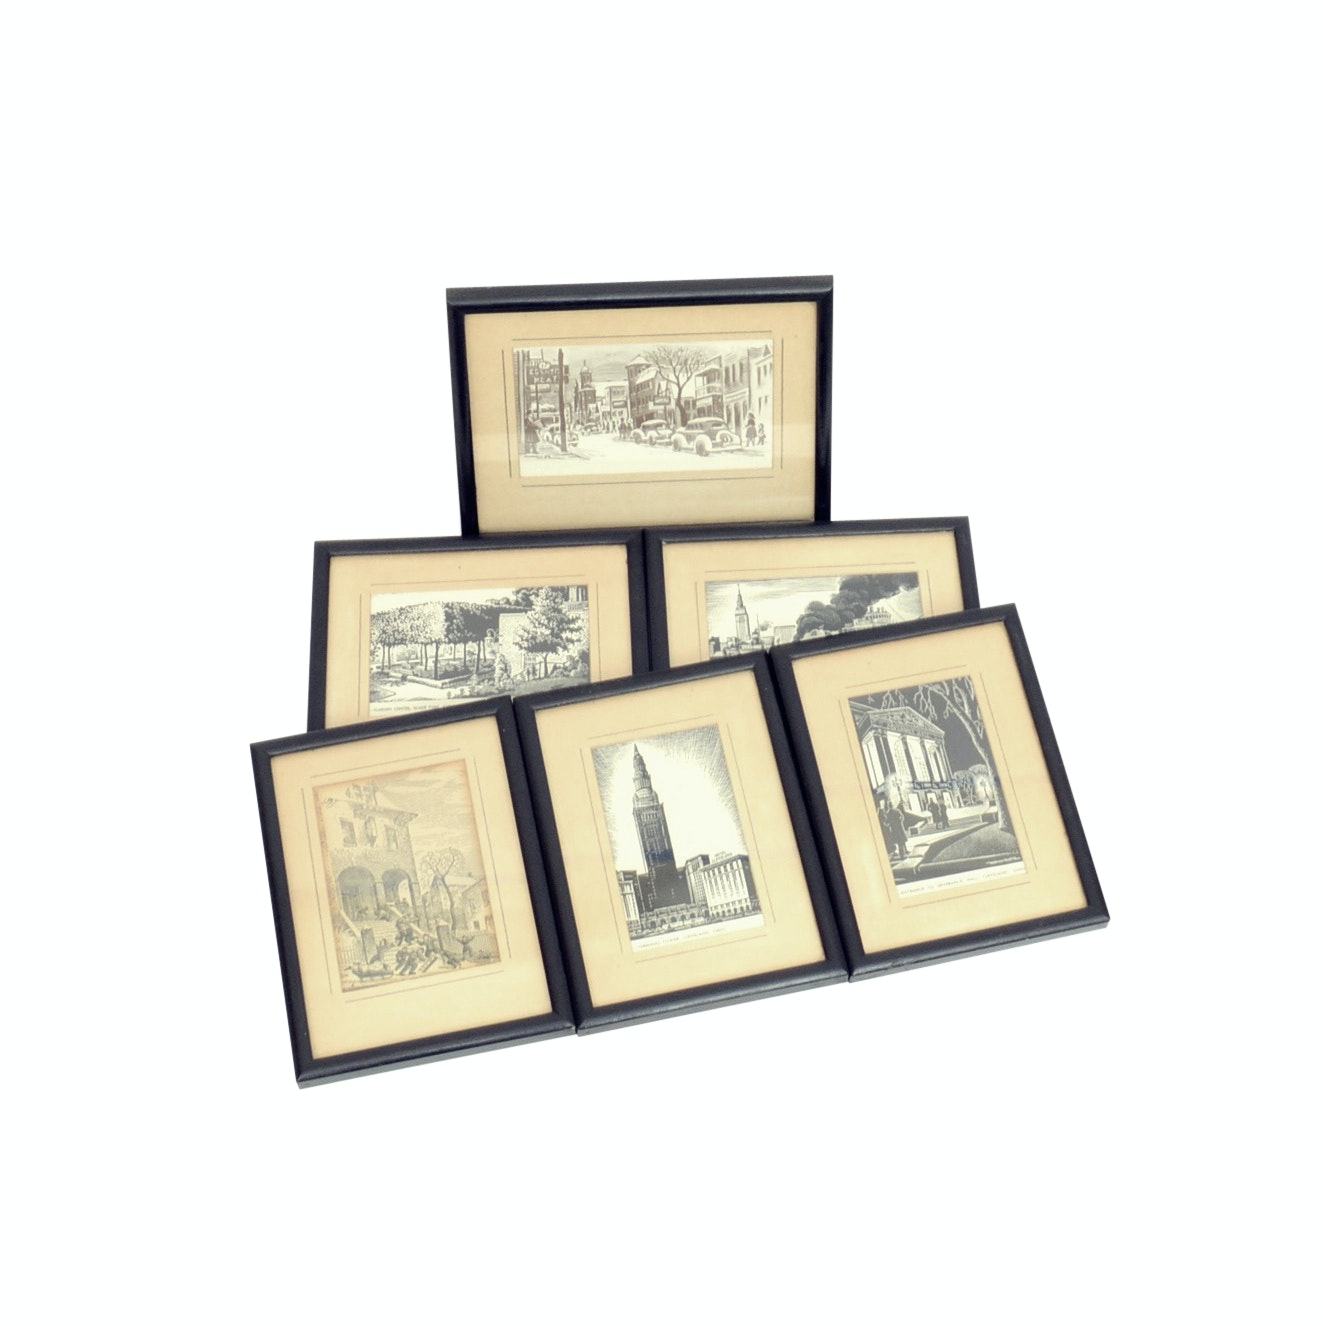 Collection of Prints After Woldemard Neufeld Featuring Scenes of Cleveland, Ohio